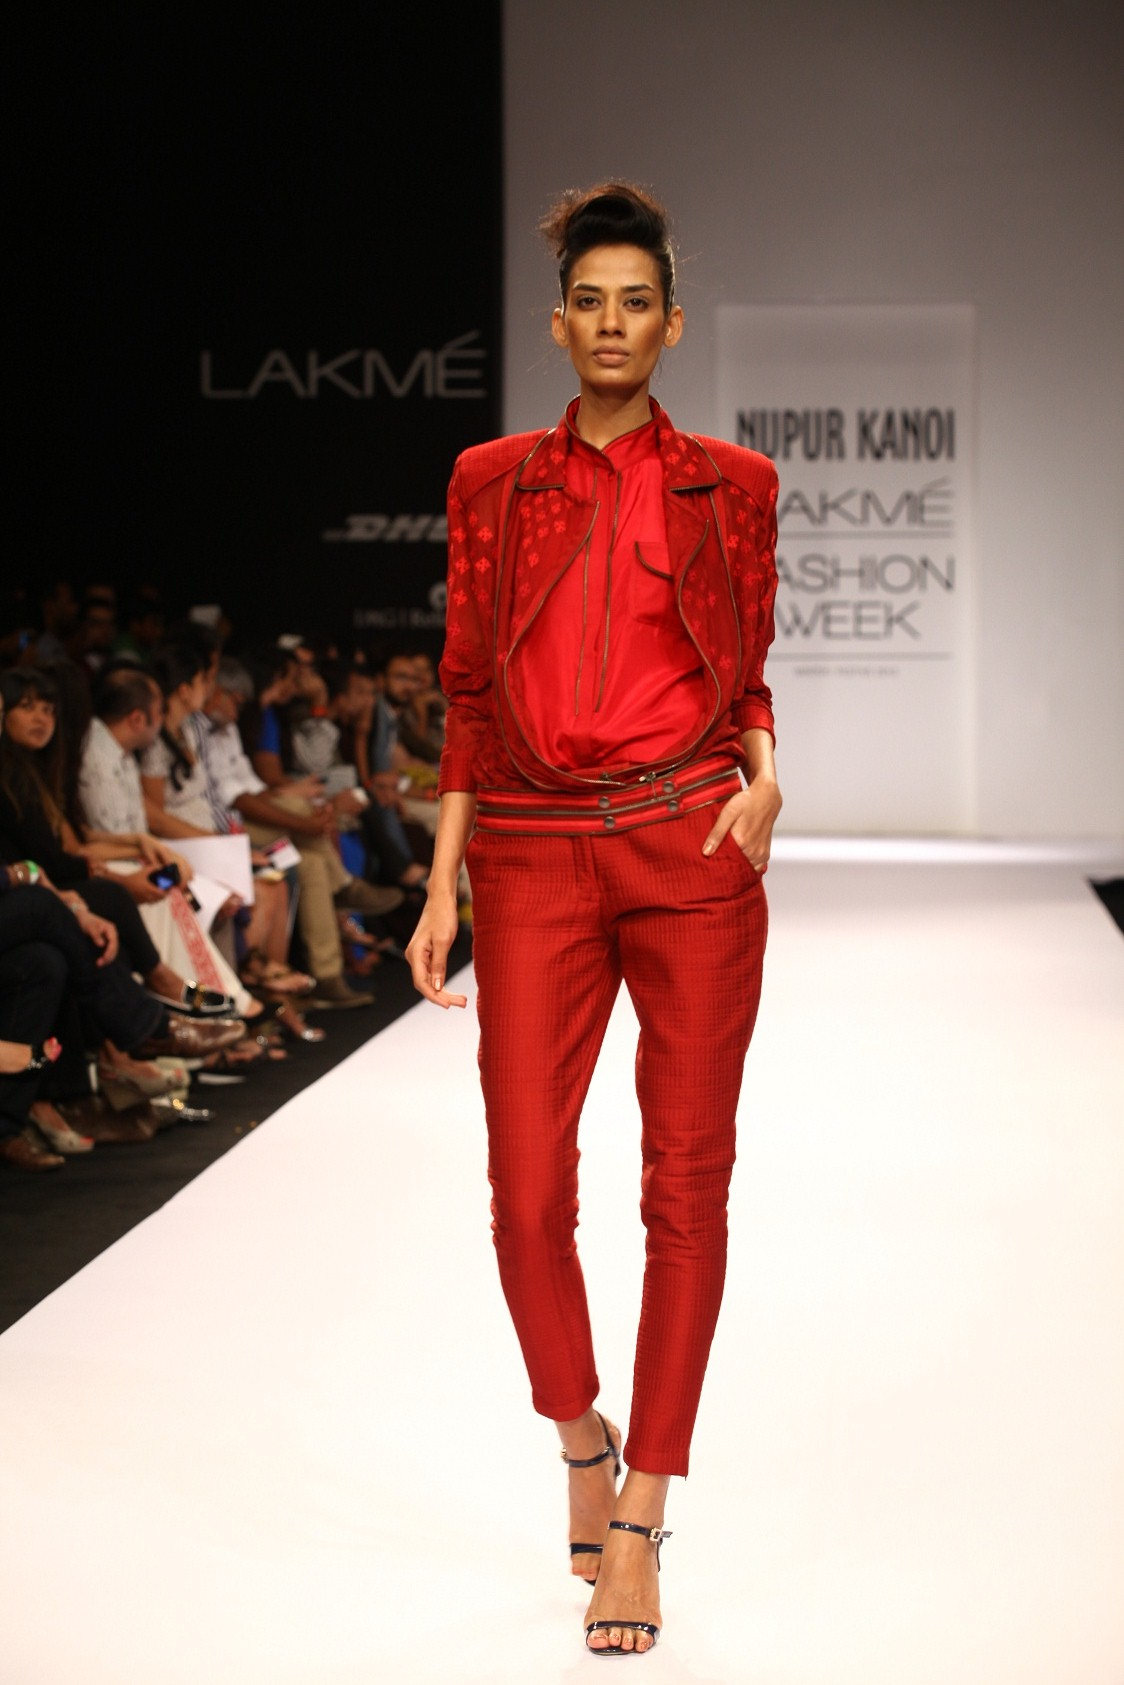 "August 2013: Adding controlled Boho chic to her collection called ""Eccentricity Tour"", Nupur Kanoi was inspired at the Lakmé Fashion Week Winter/Festive 2013 show by the decadent 70's era when music and flower-power madness was the rage. The li"